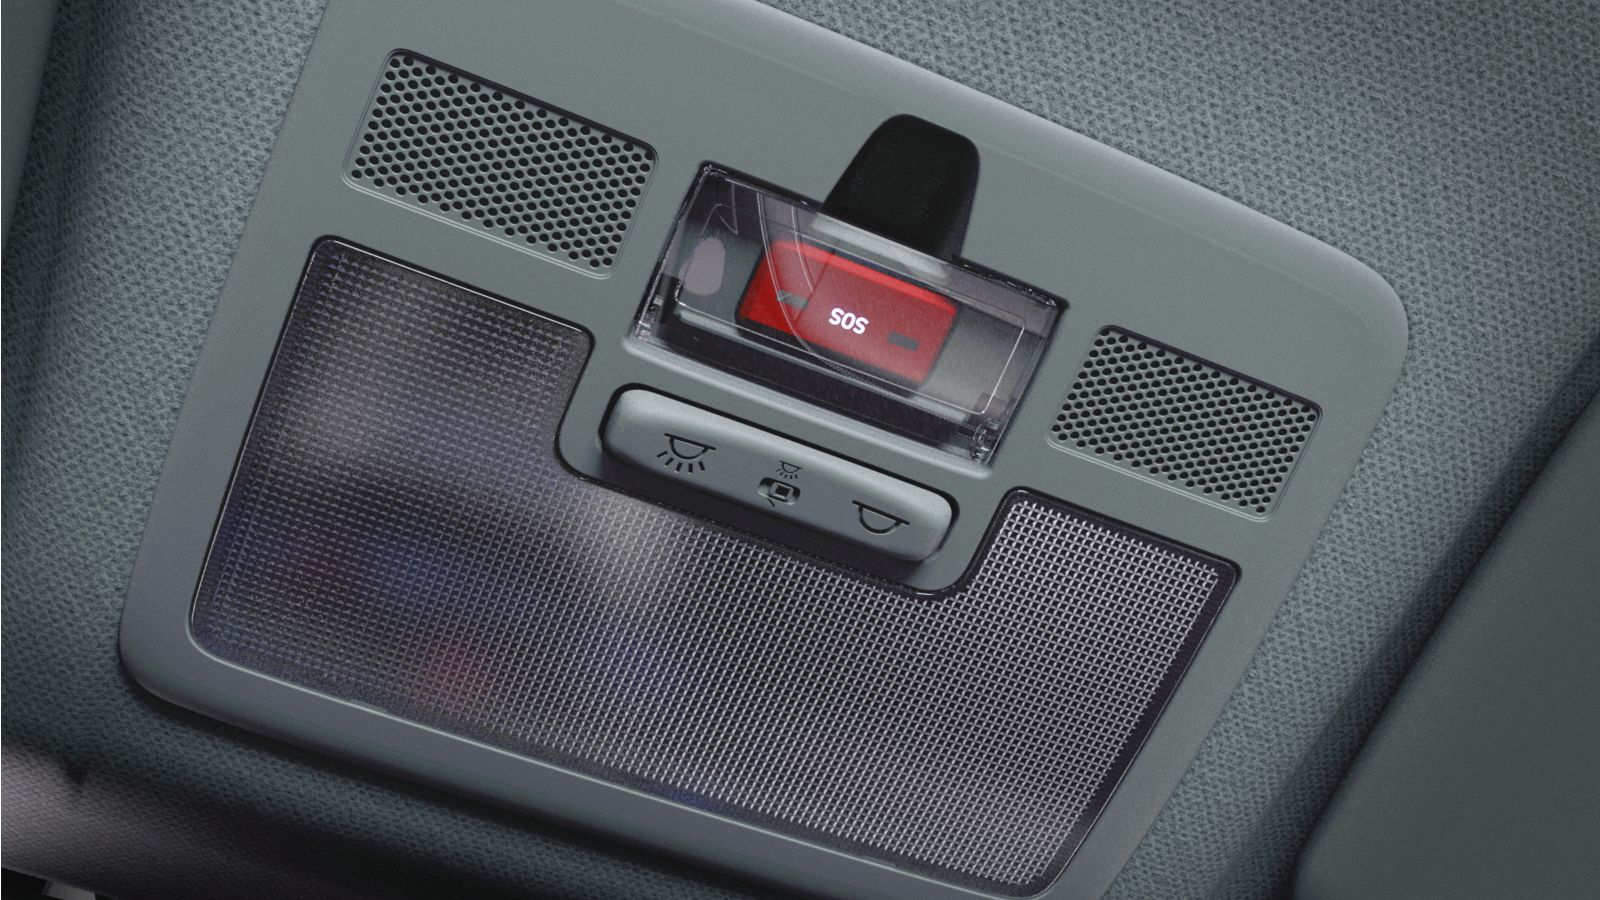 Close up view of the E-call button in the all-new Hyundai i10.